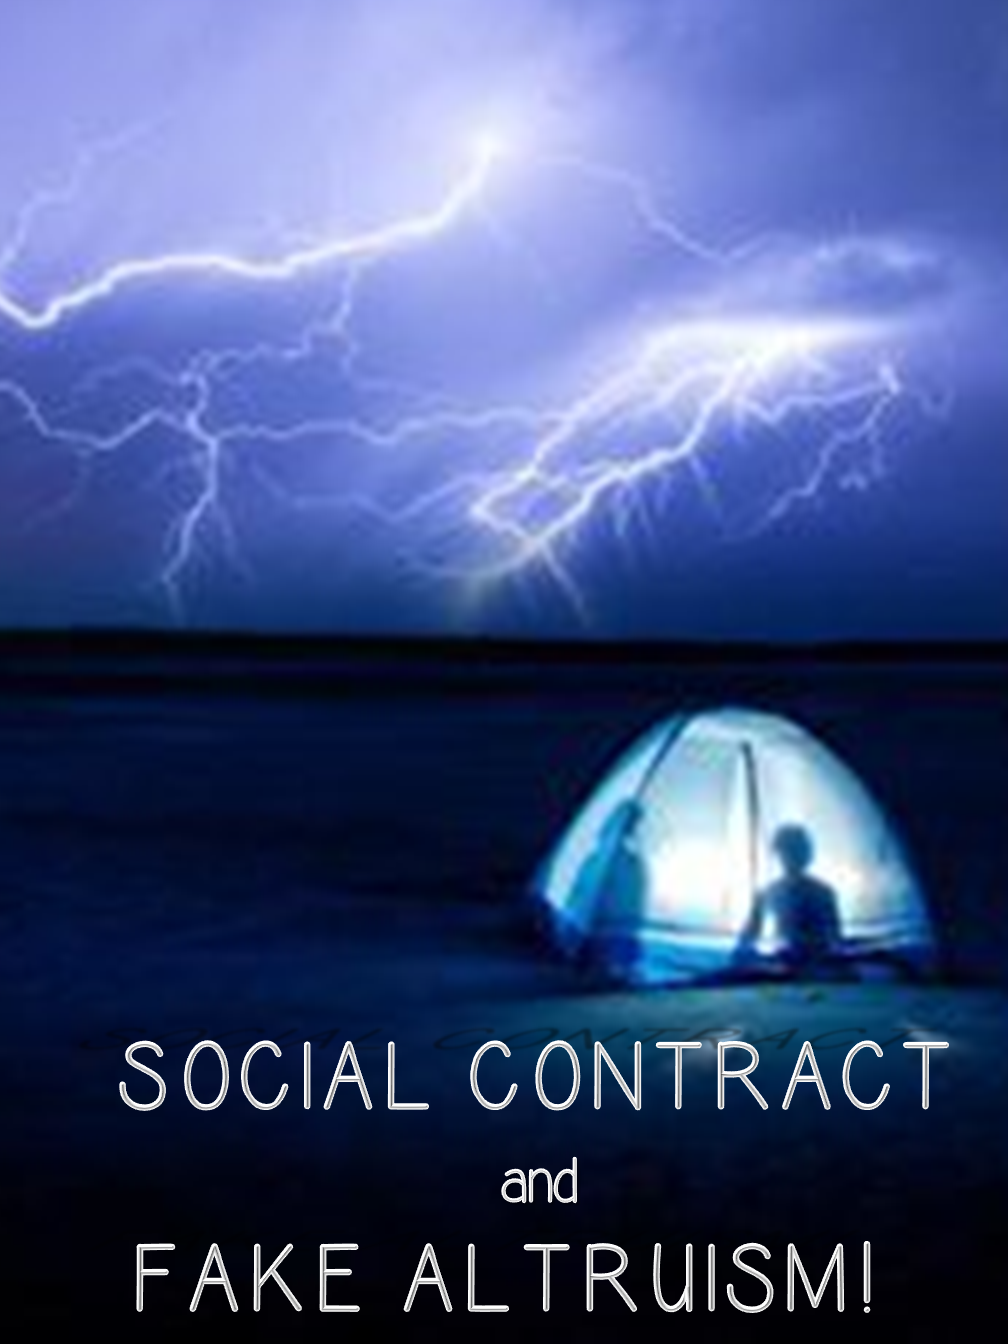 SOCIAL CONTRACT and FAKE ALTRUISM